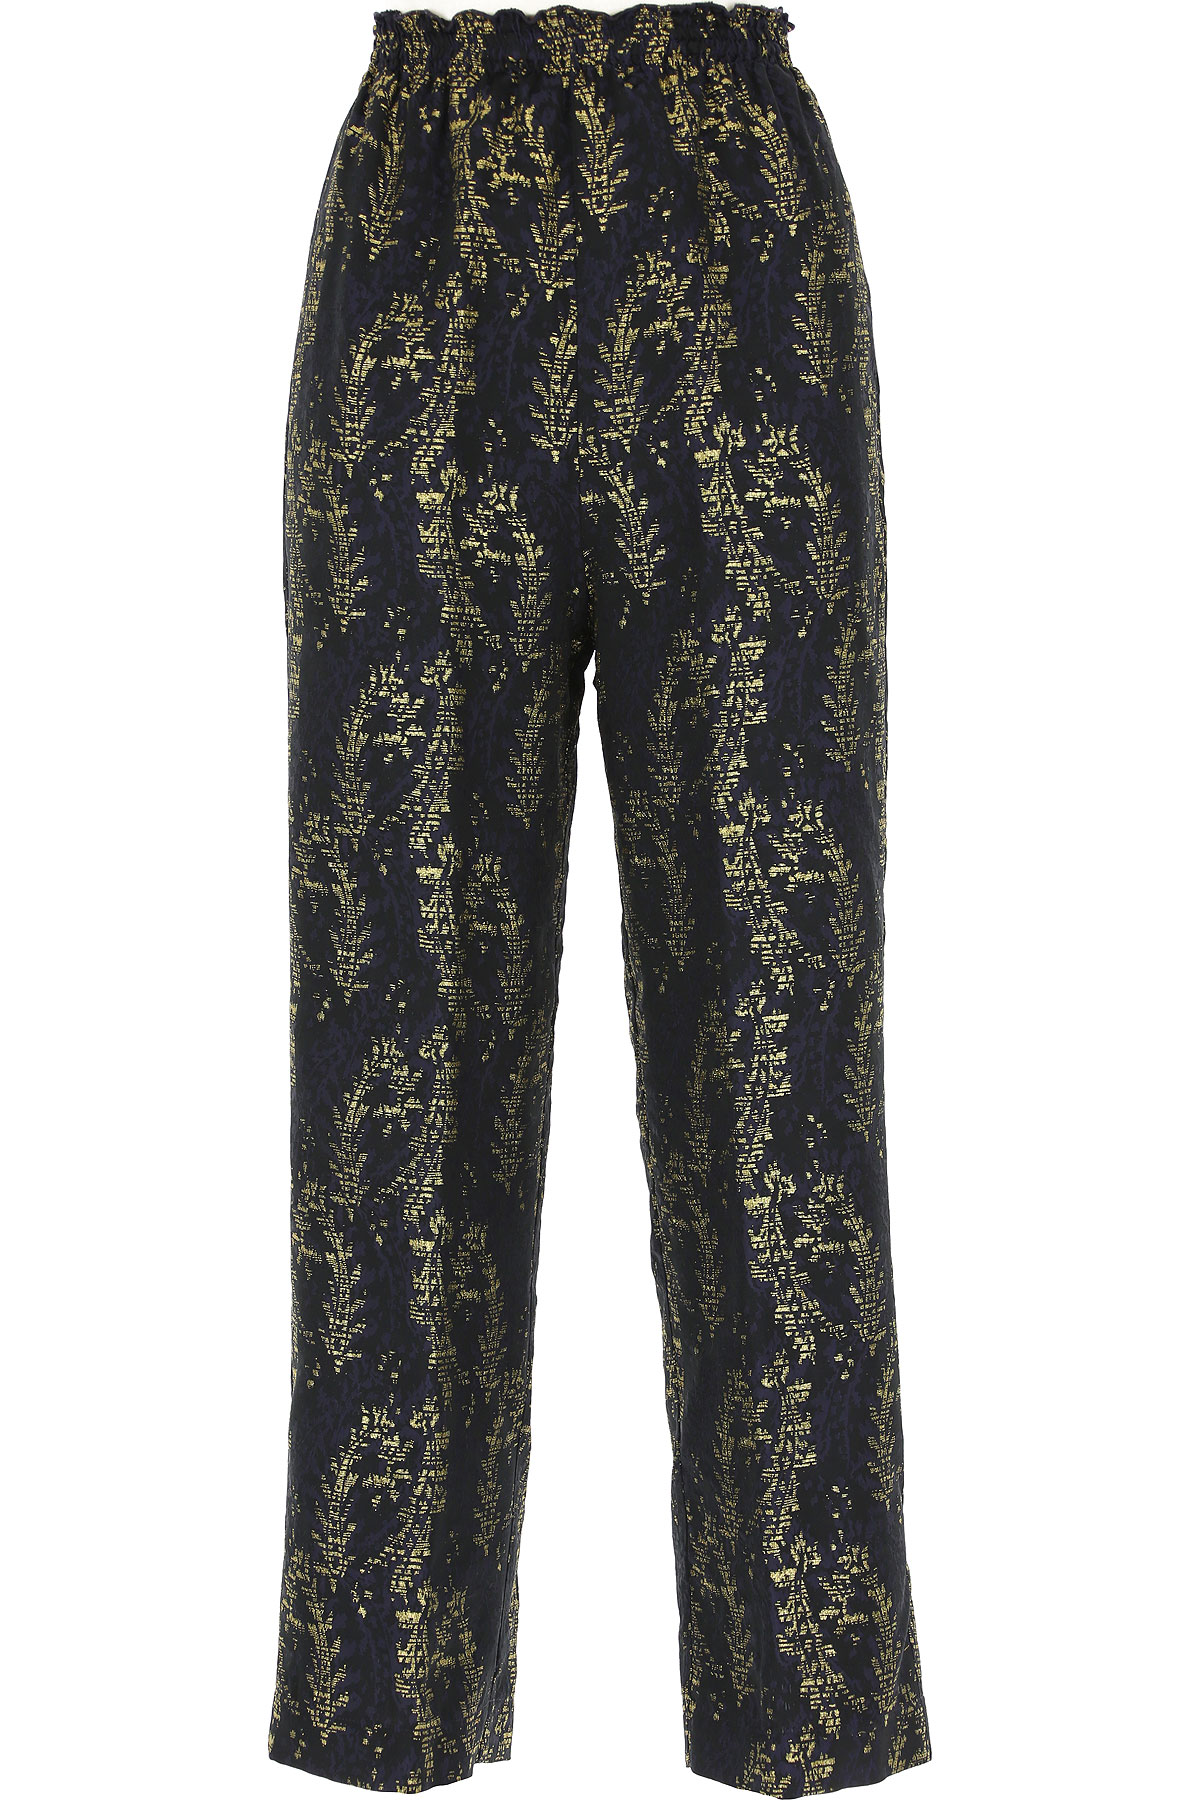 Forte Forte Pants for Women On Sale, Midnight Blue, polyester, 2019, 00 - XXS - IT 36